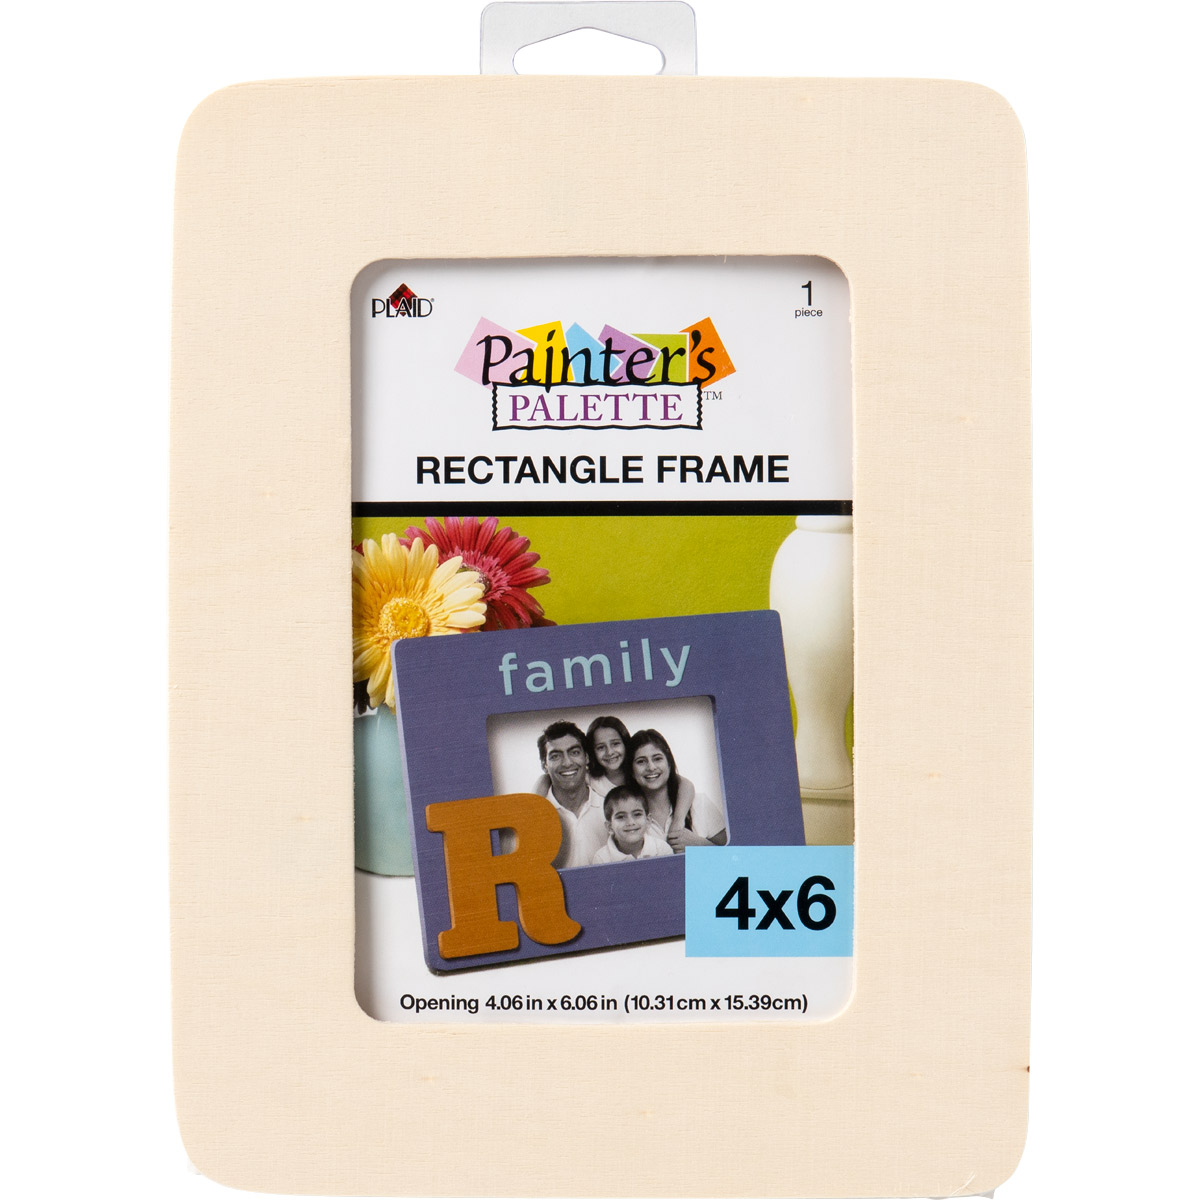 Plaid ® Painter's Palette™ Wood Value Frame - Rectangle, 4 x 6 Opening